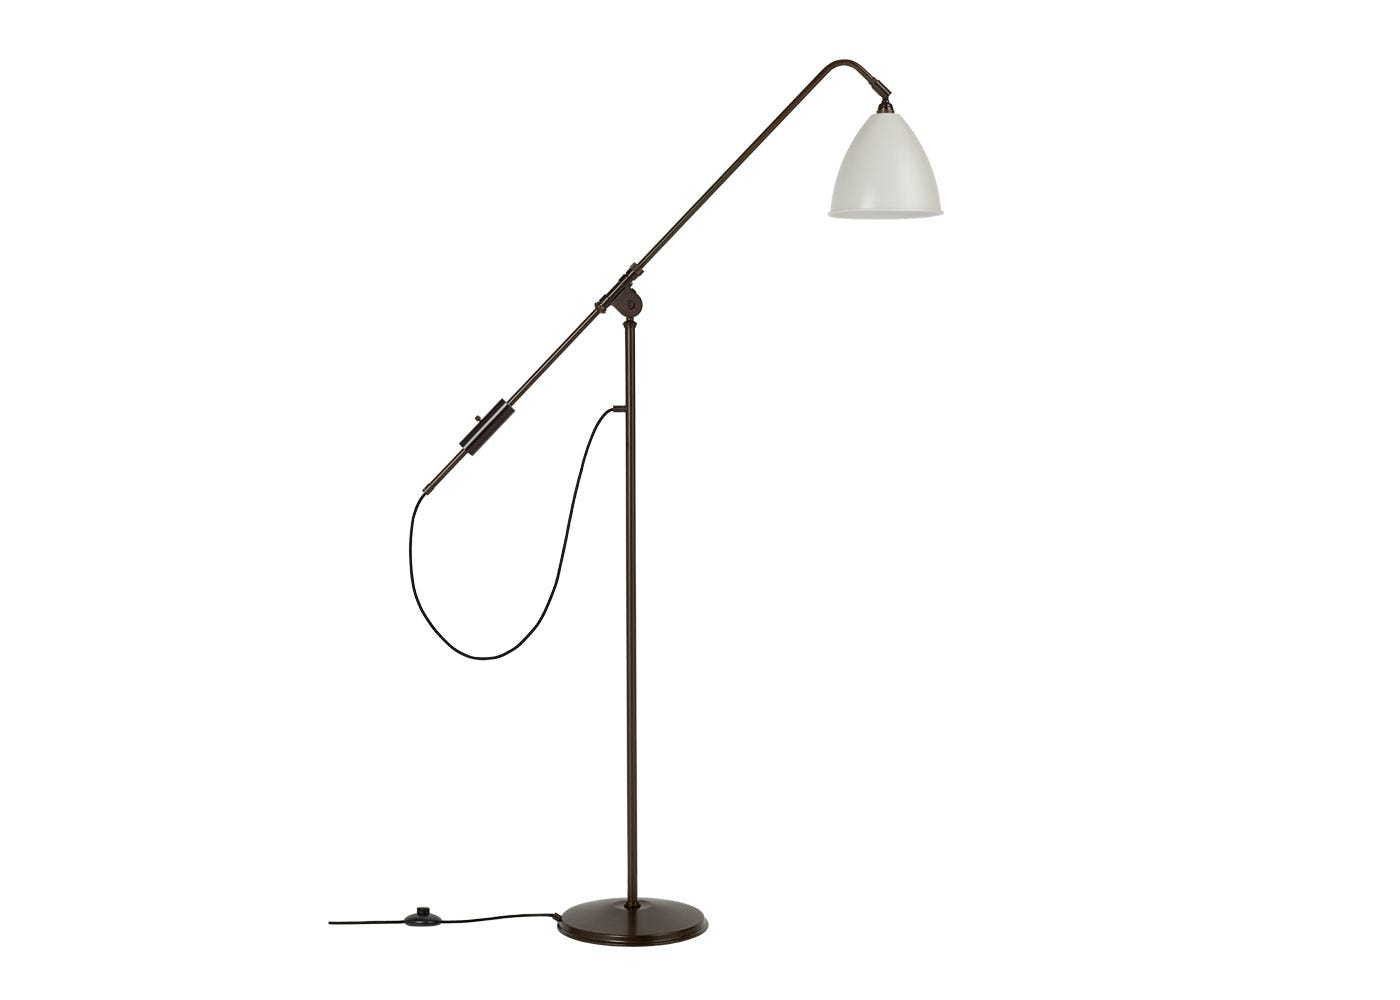 As Shown: BL4 Floor Lamp Black Base Base with White Shade